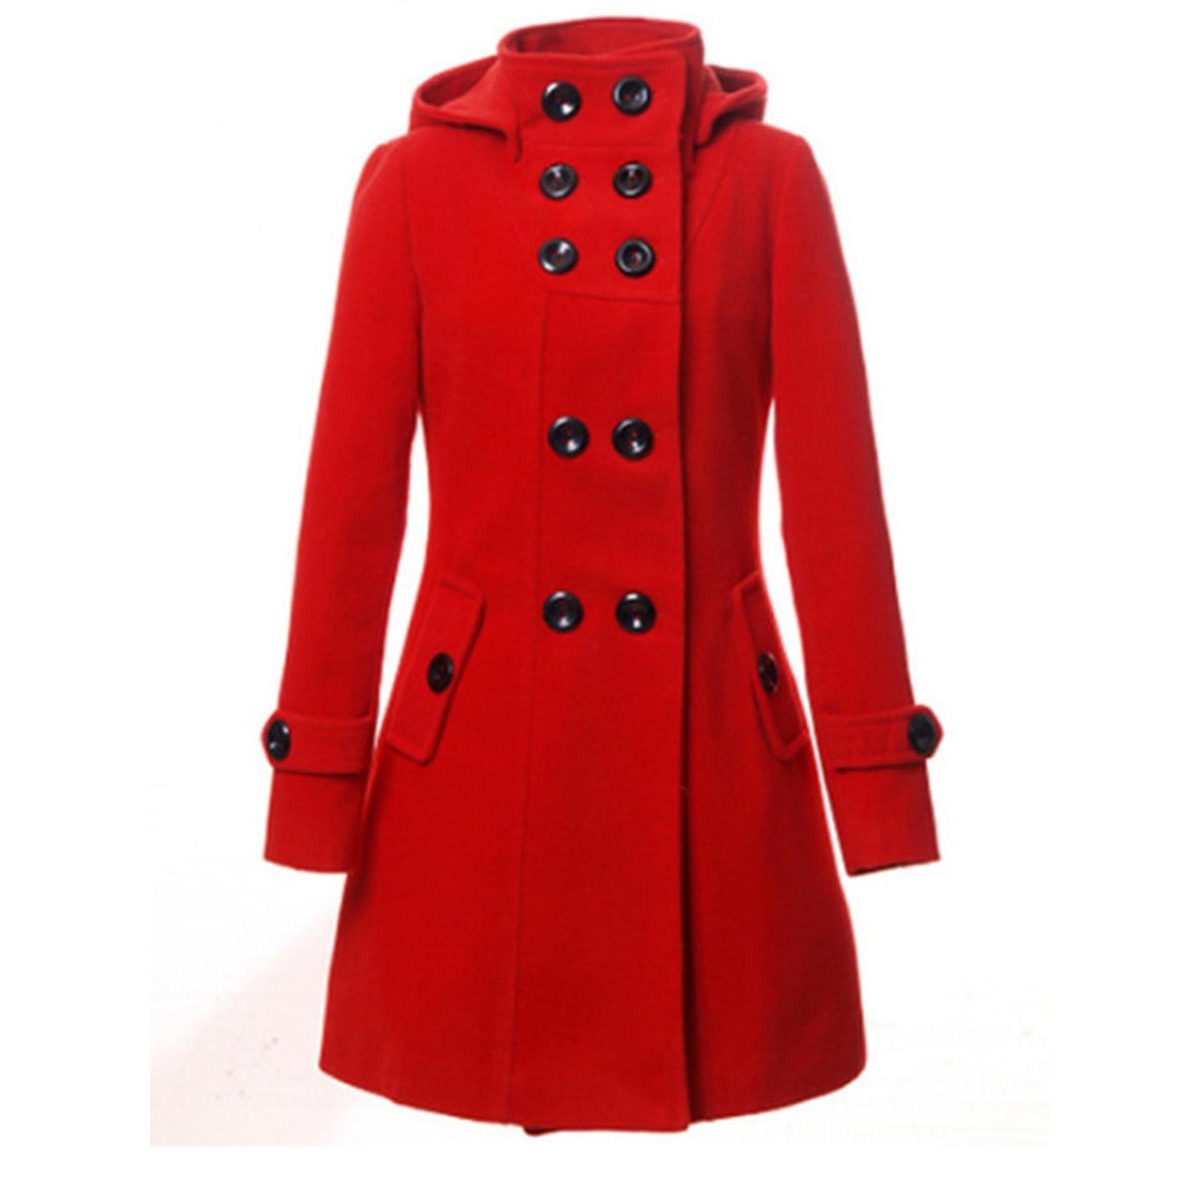 Yong17 Winter Coat Women 2018 Black Red Gray Outerwear Autumn Office Fashion Casual Double Breasted Elegant Slim Long Coat